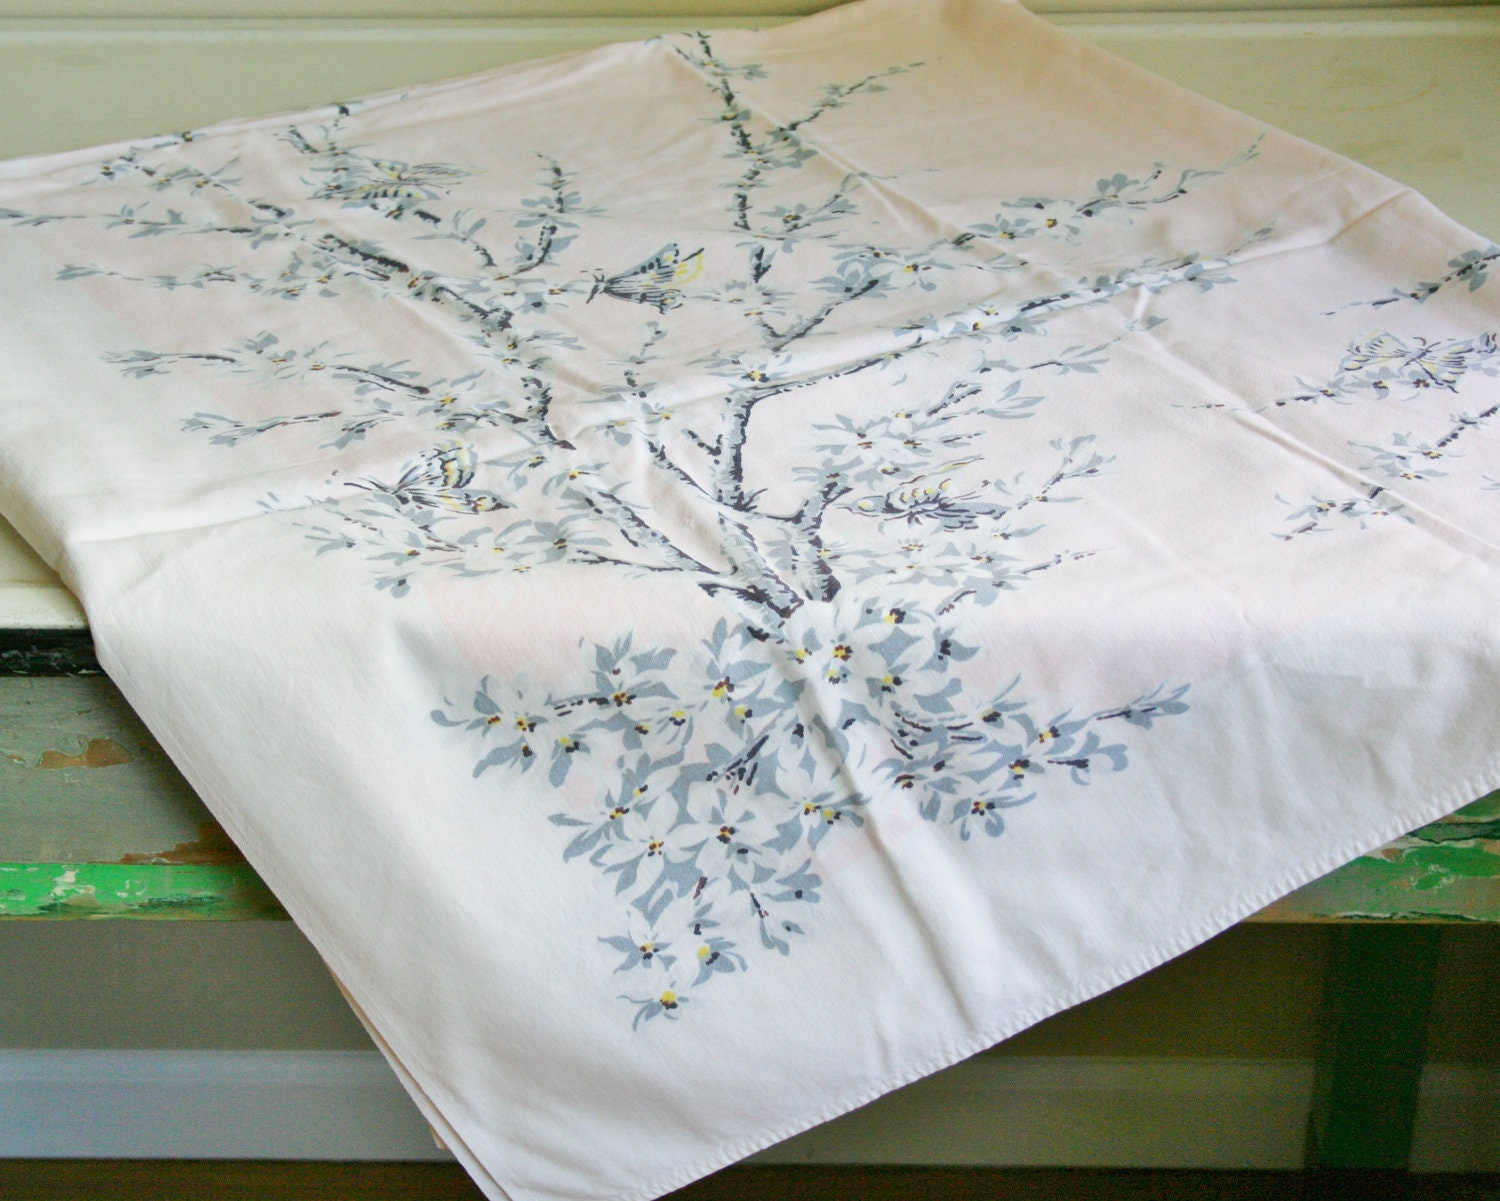 Vintage Tablecloth - tracinicole